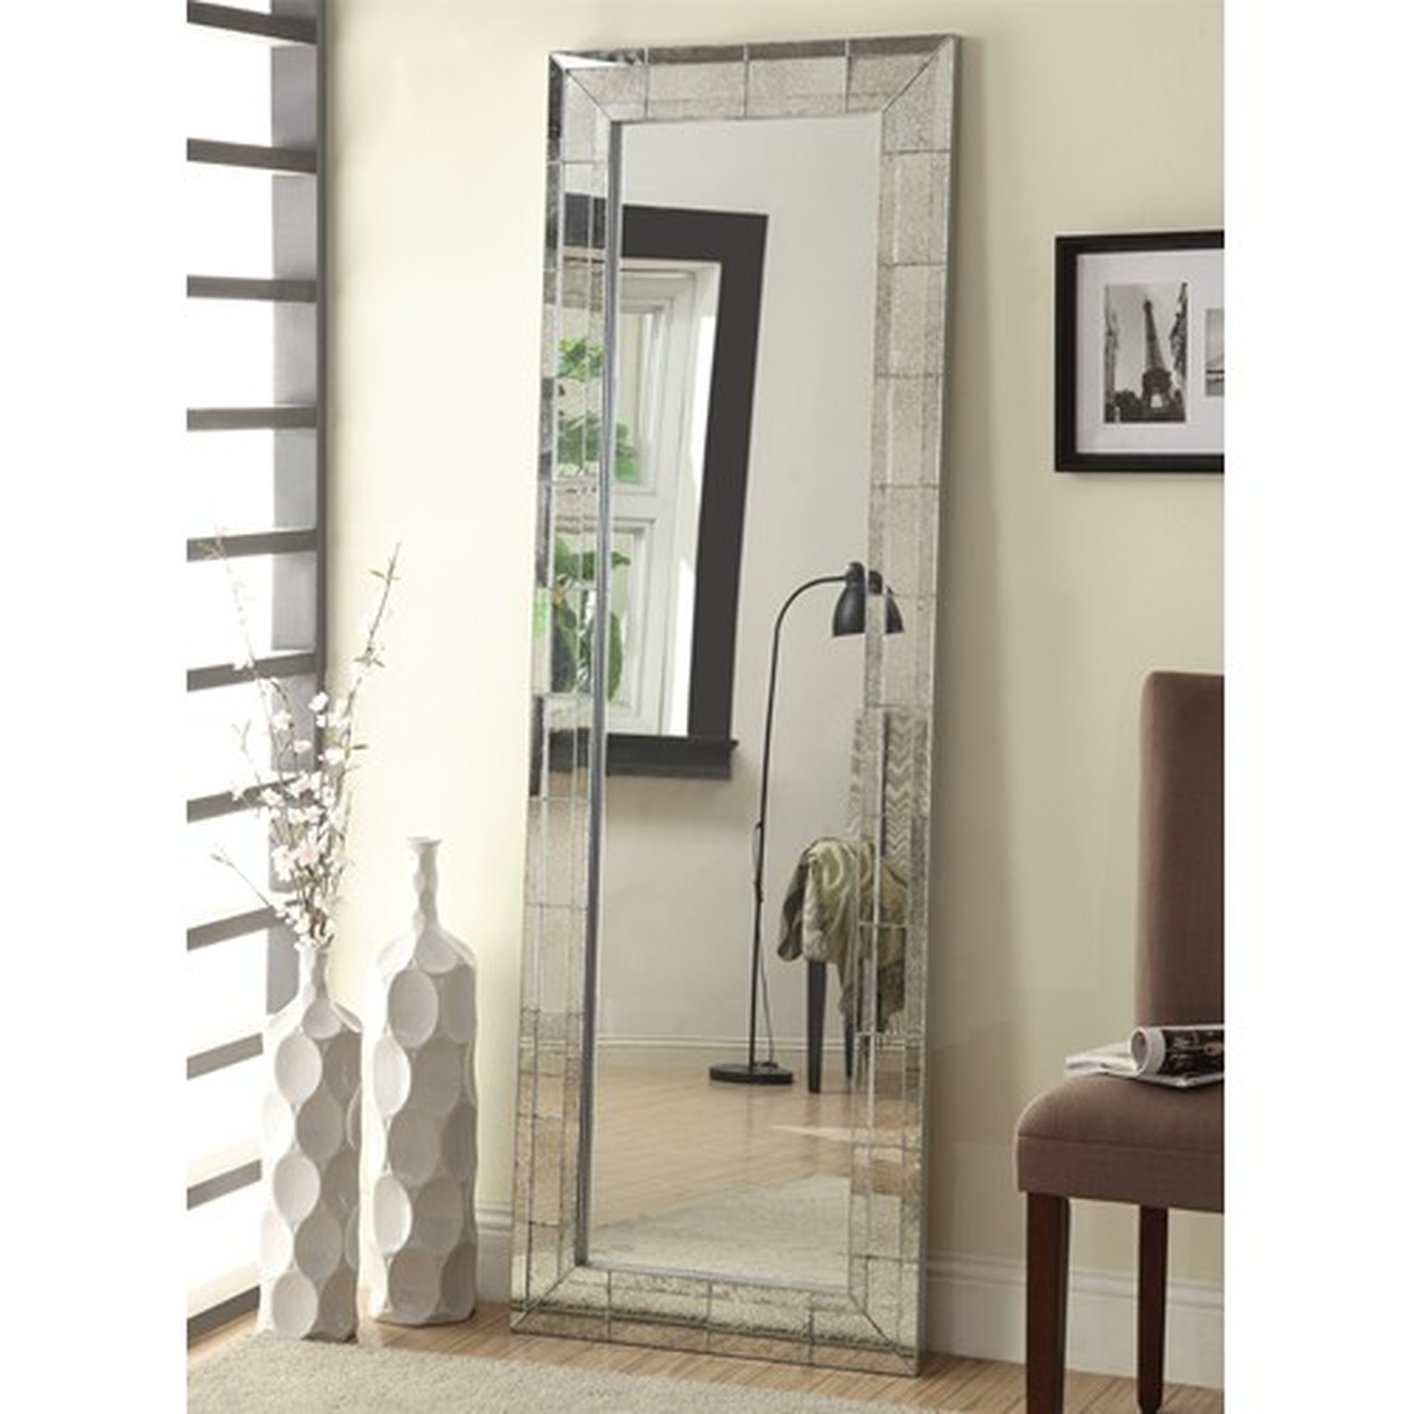 Flooring Shocking Floor Length Mirror Picture Ideas Antique Regarding Antique French Floor Mirror (Image 12 of 15)